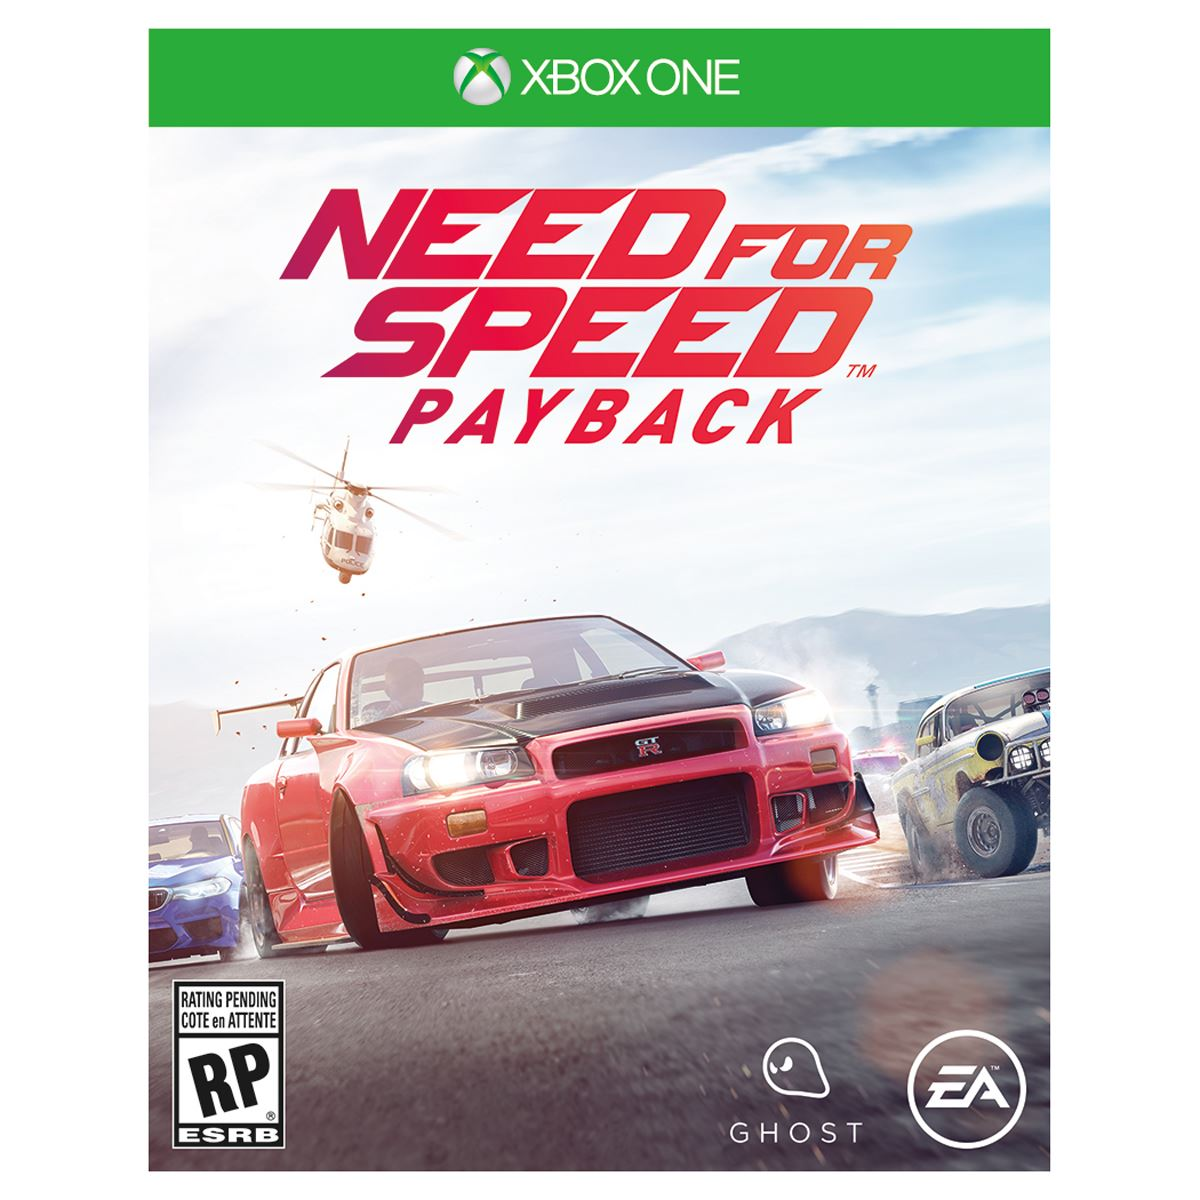 Xbox One NFS Payback